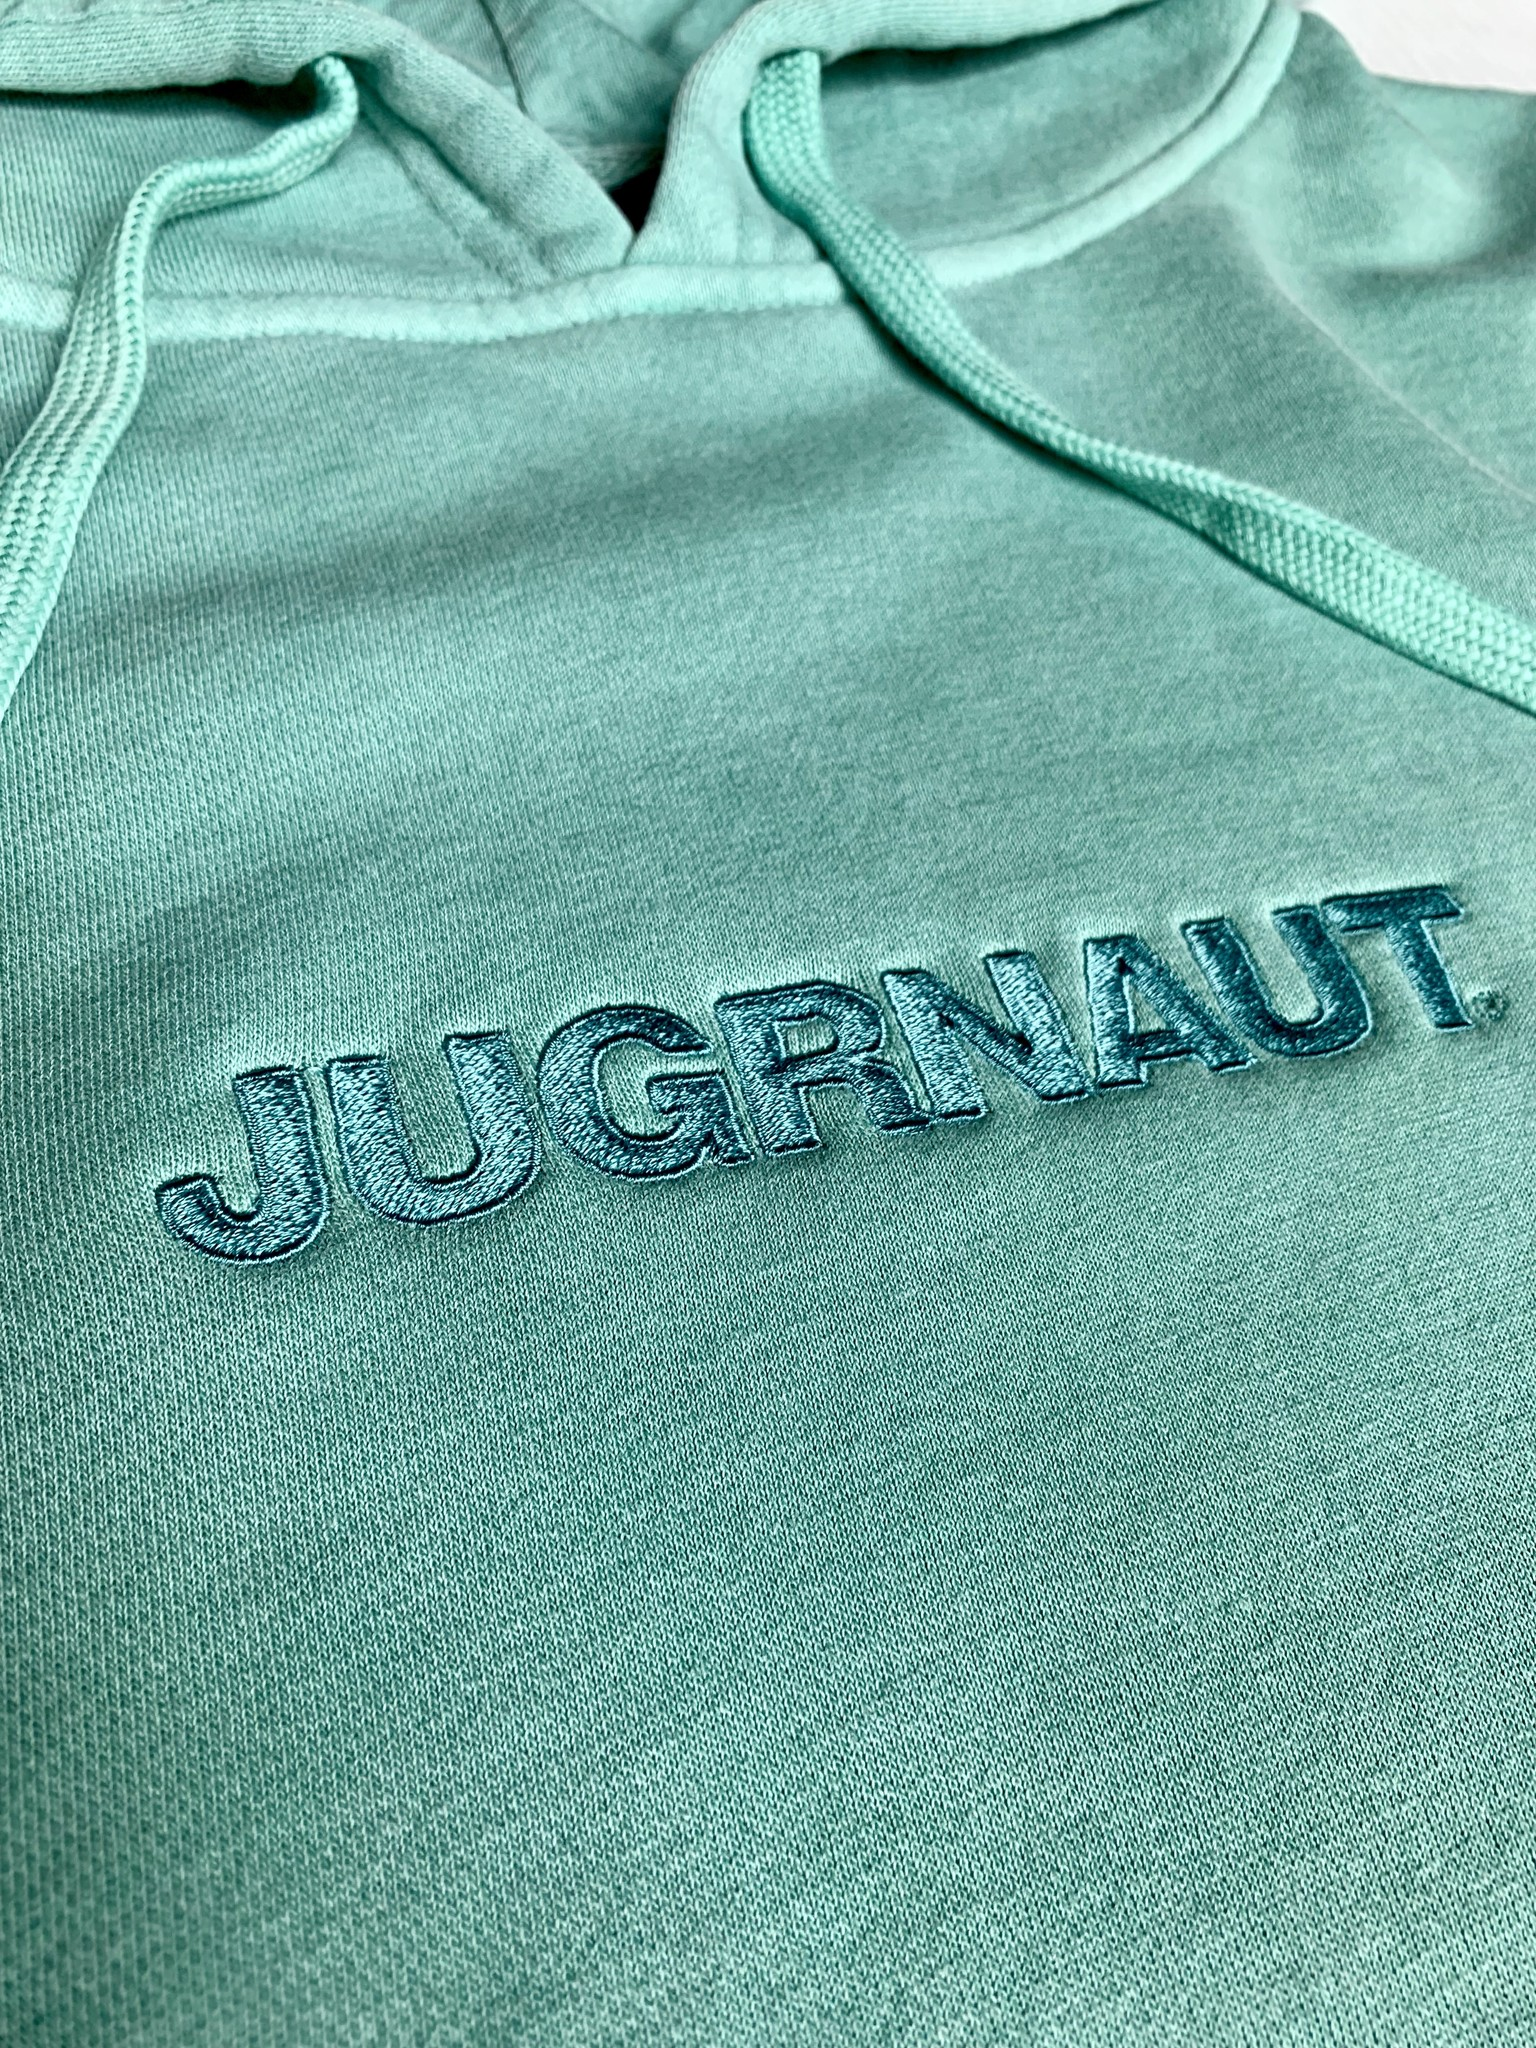 Jugrnaut Jugrnaut Embroidered Spell Out '19 Mint